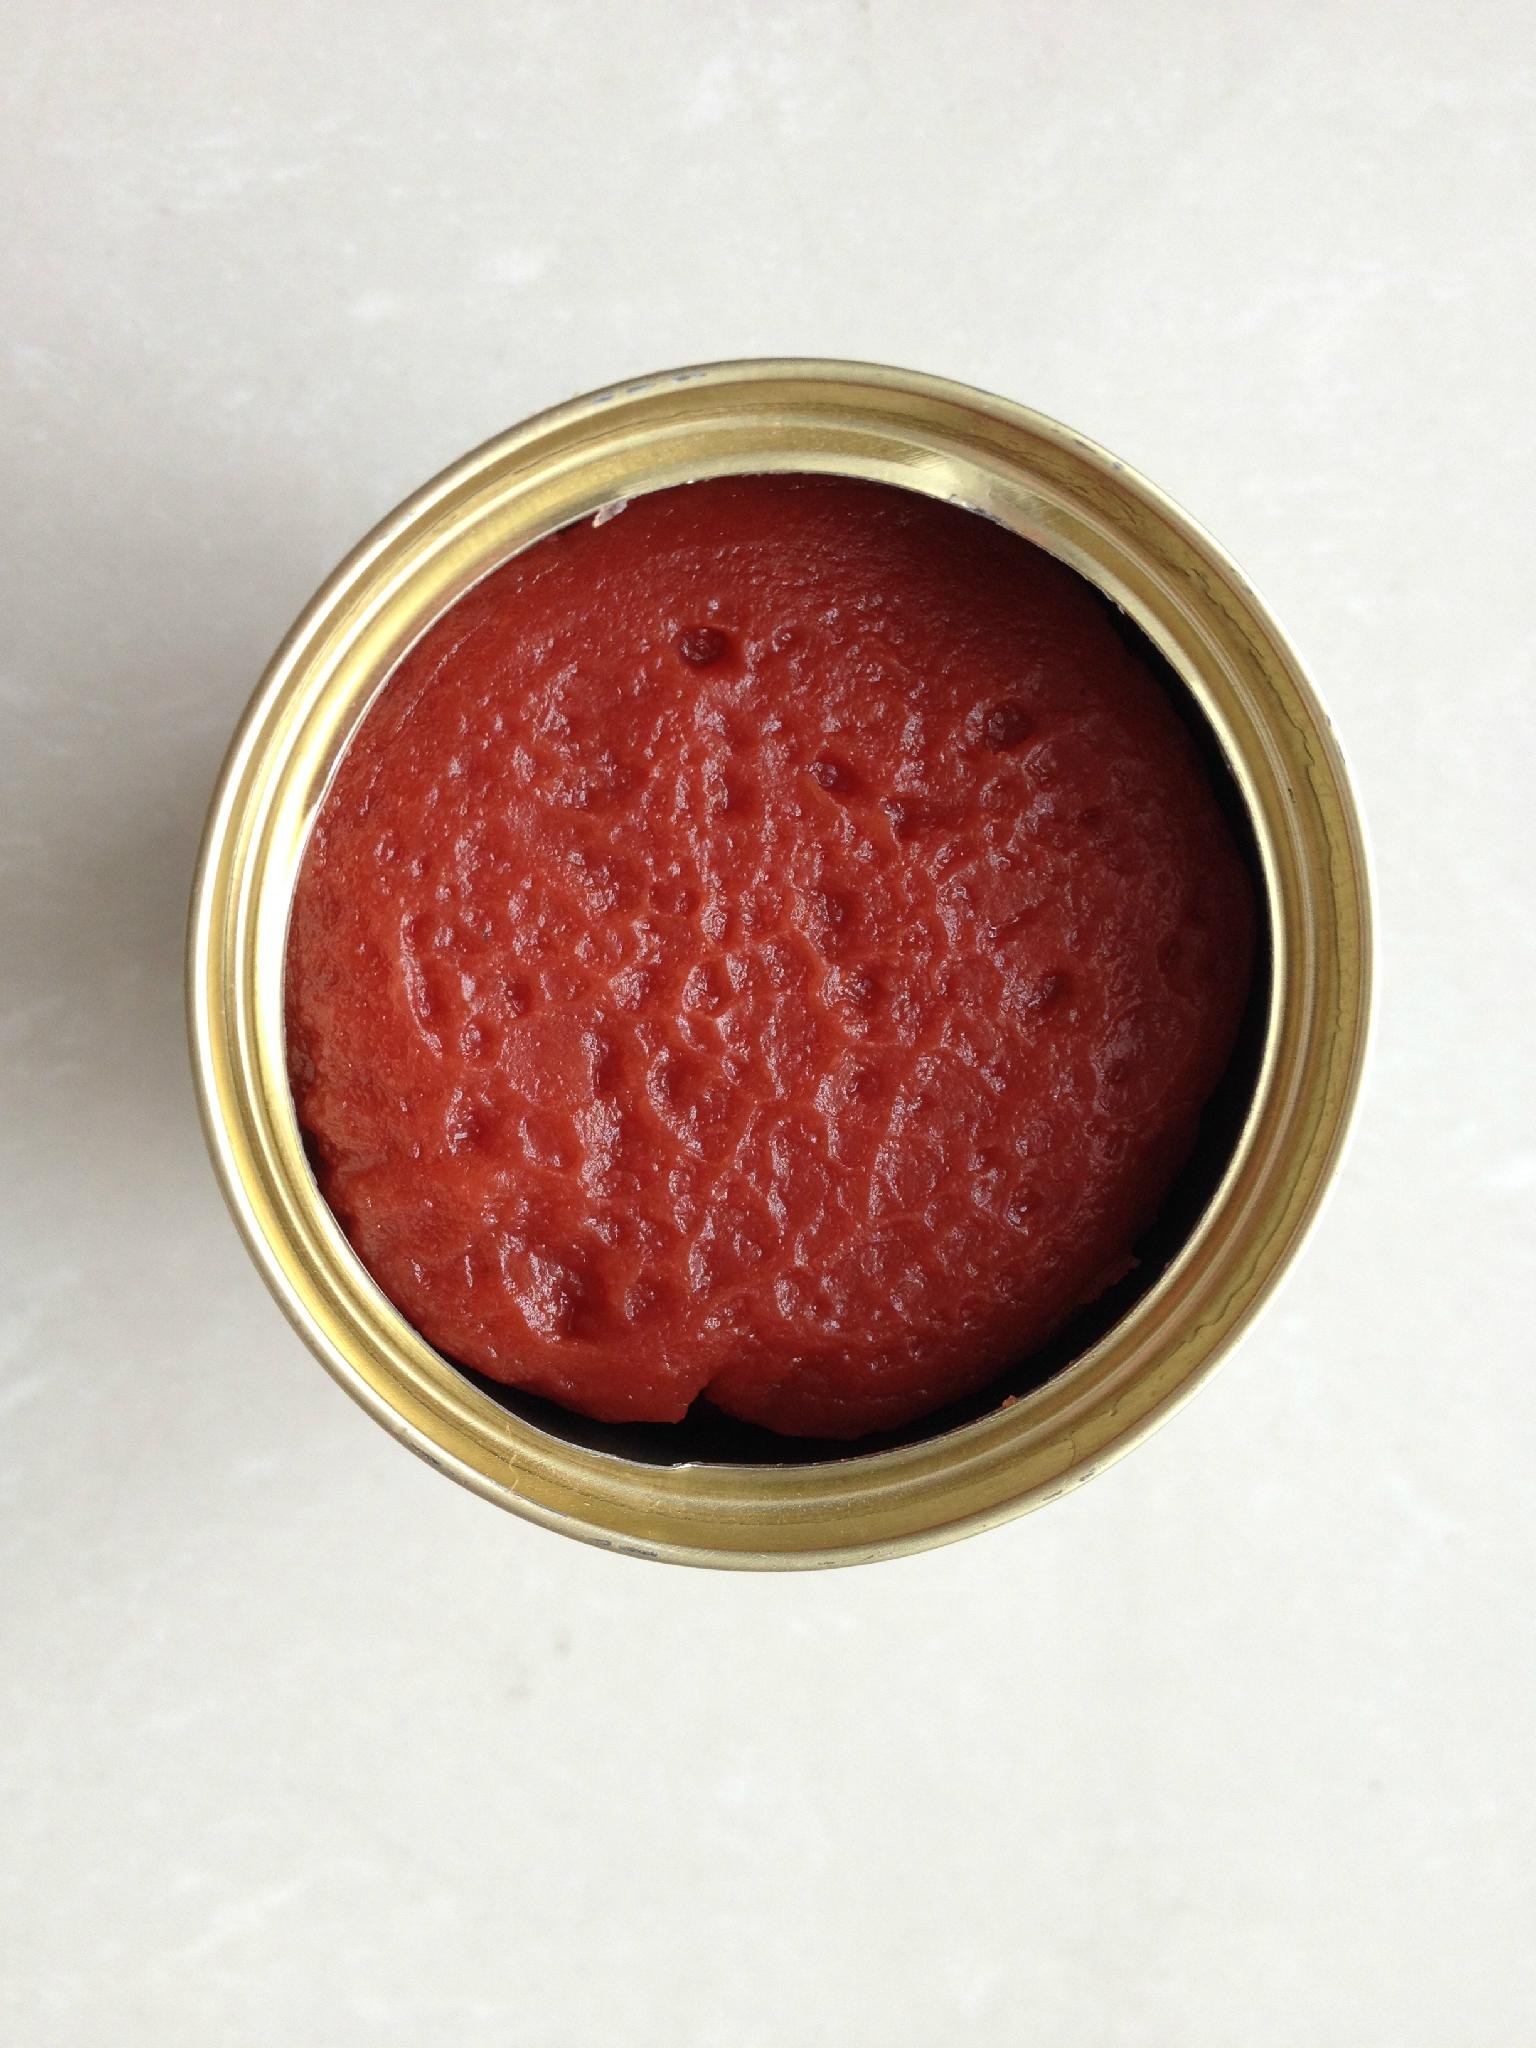 Canned Tomato Paste 3